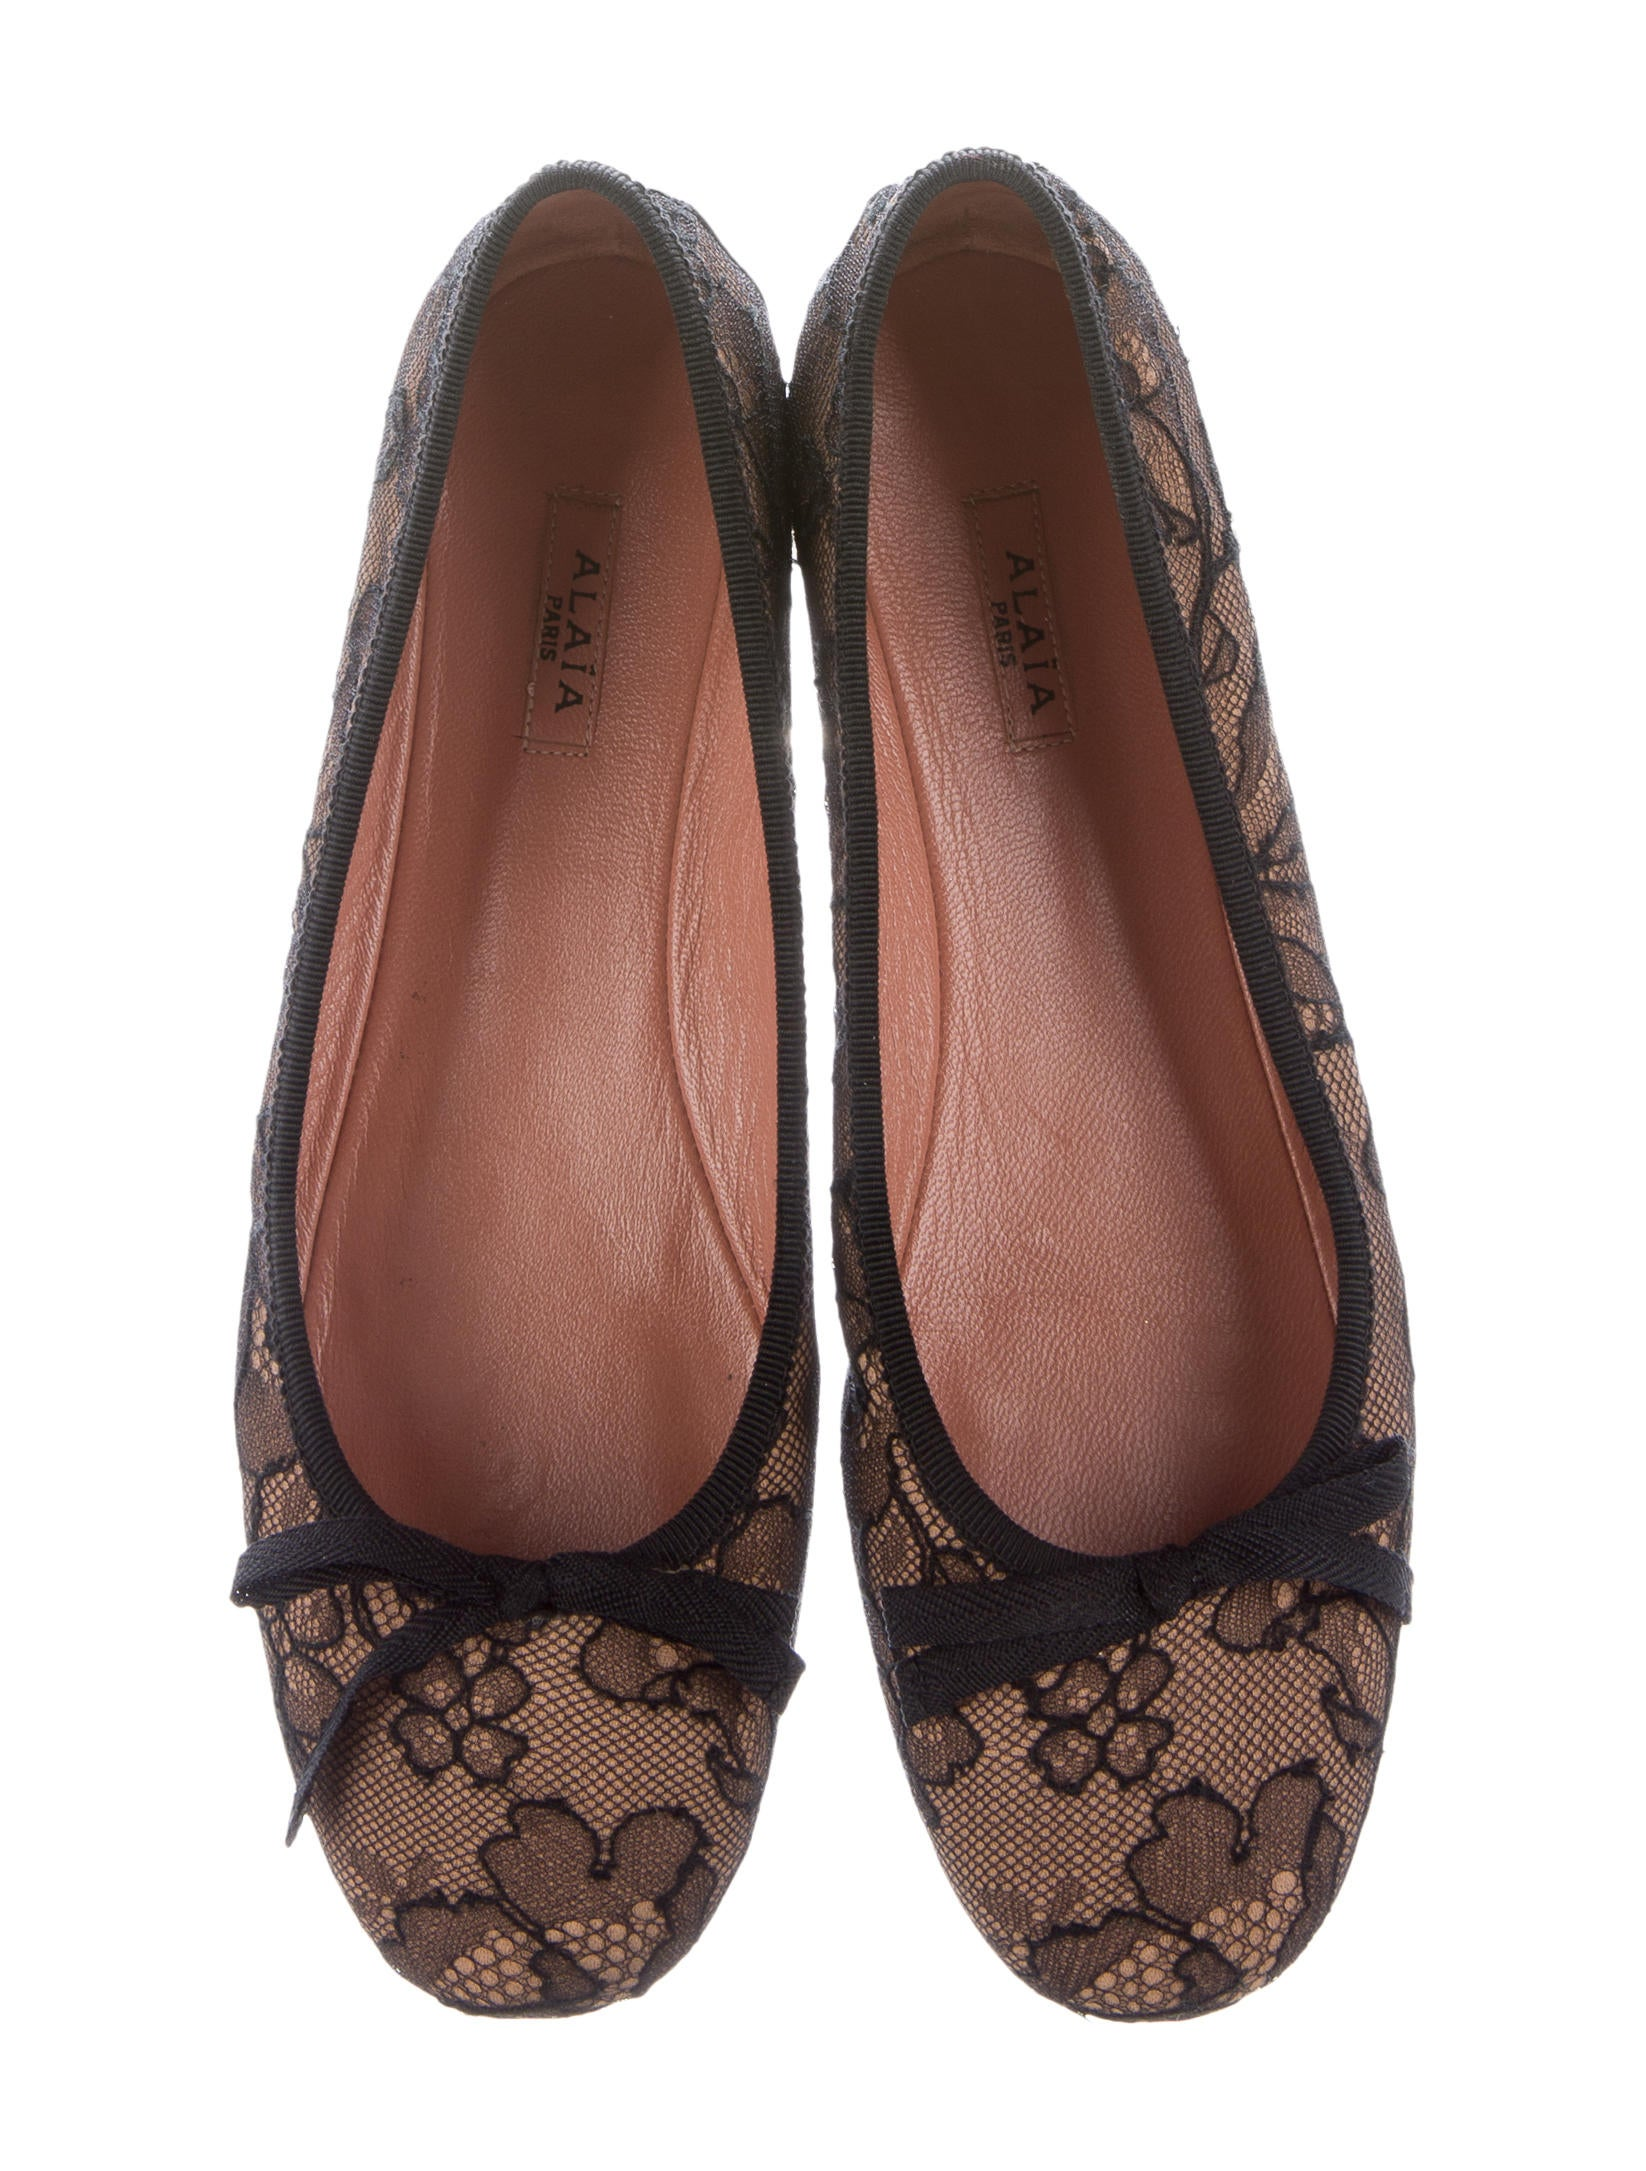 Free shipping BOTH ways on lace up ballet flats, from our vast selection of styles. Fast delivery, and 24/7/ real-person service with a smile. Click or call